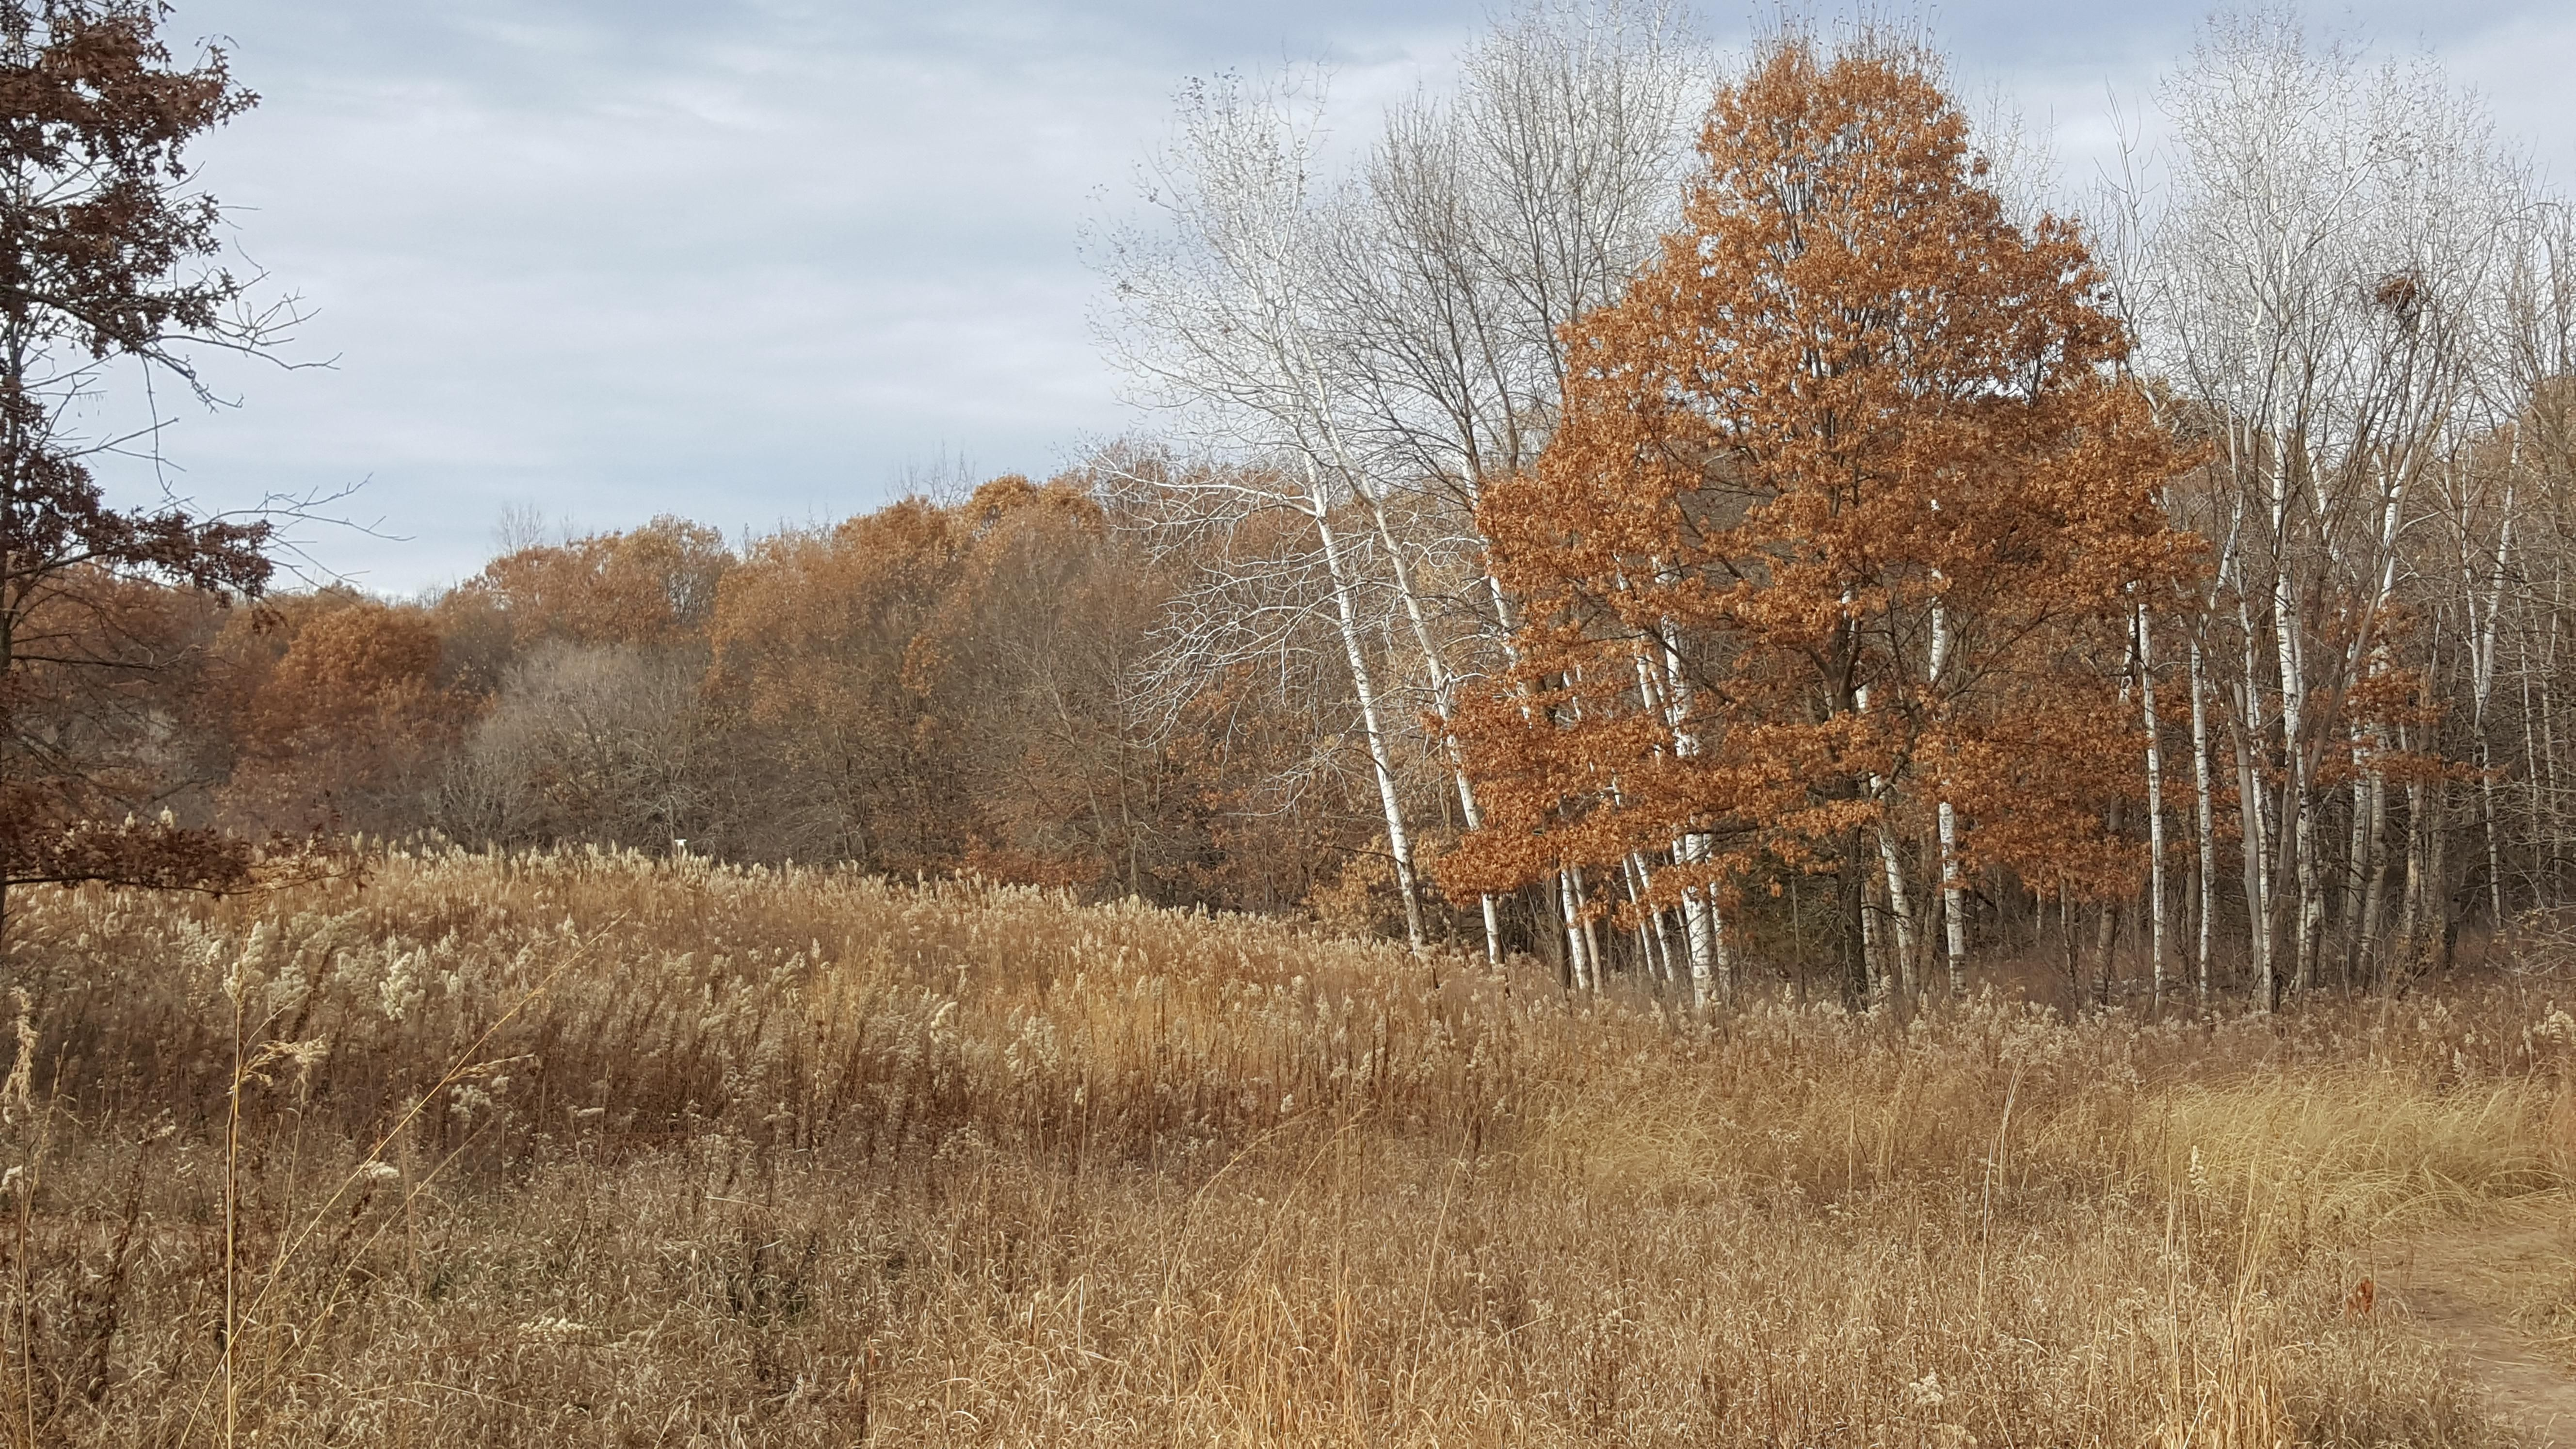 This Minnesota fall landscape like a Bob Ross painting #nature #teesylvania #photos #amazingworld #world #amazingphotography #naturephotography #photography #incrediblephotos Check out teesylvania.com to find out how you can support the forests with style!